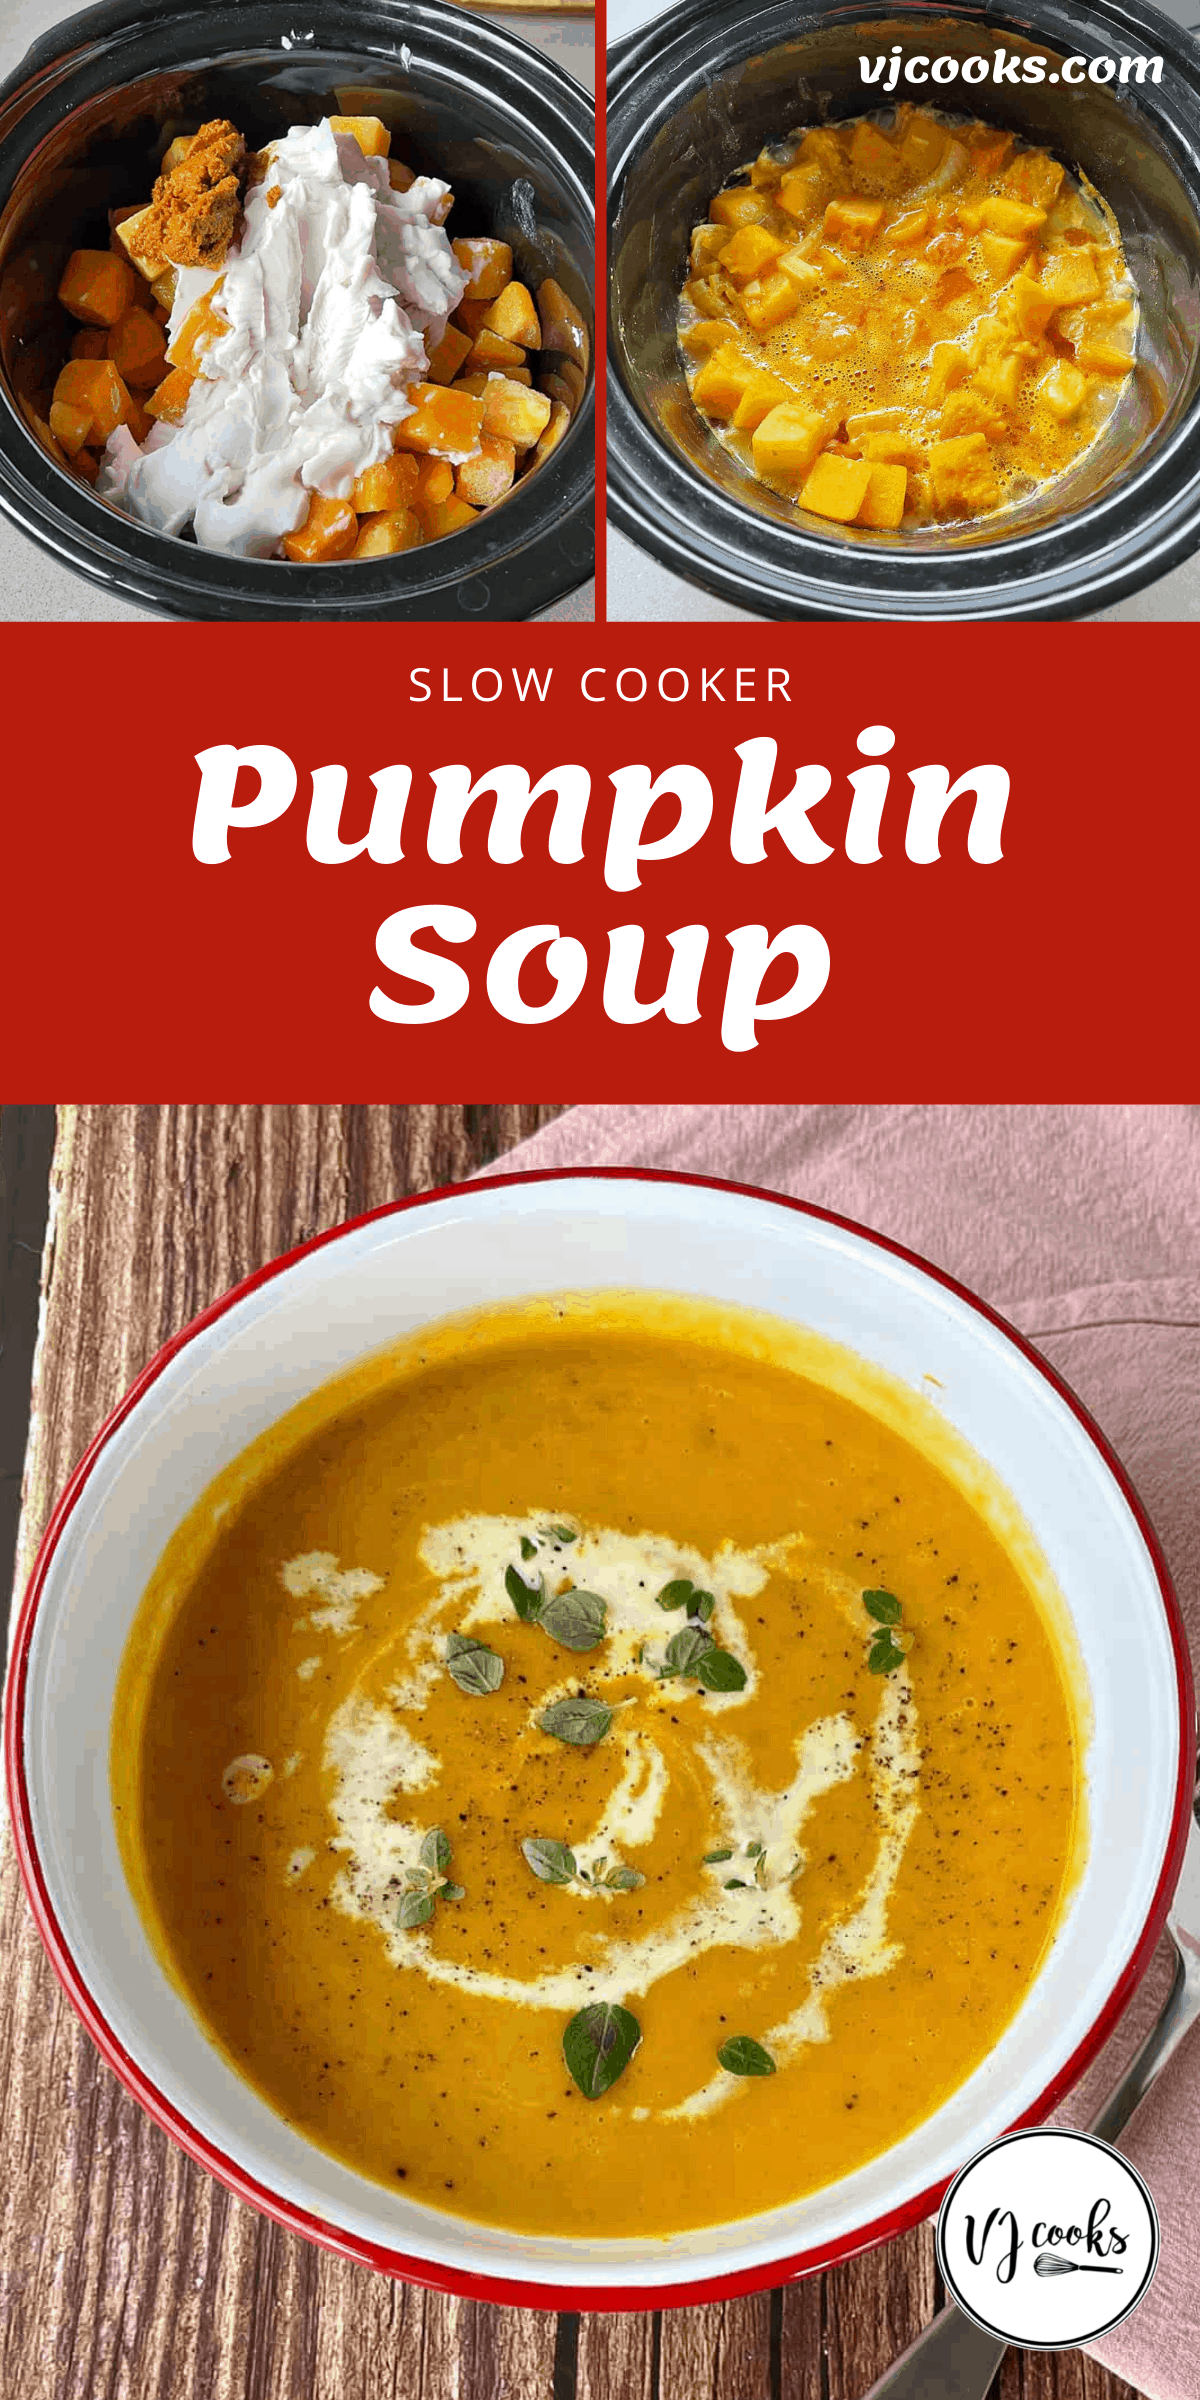 The process of making pumpkin soup in the slow cooker.